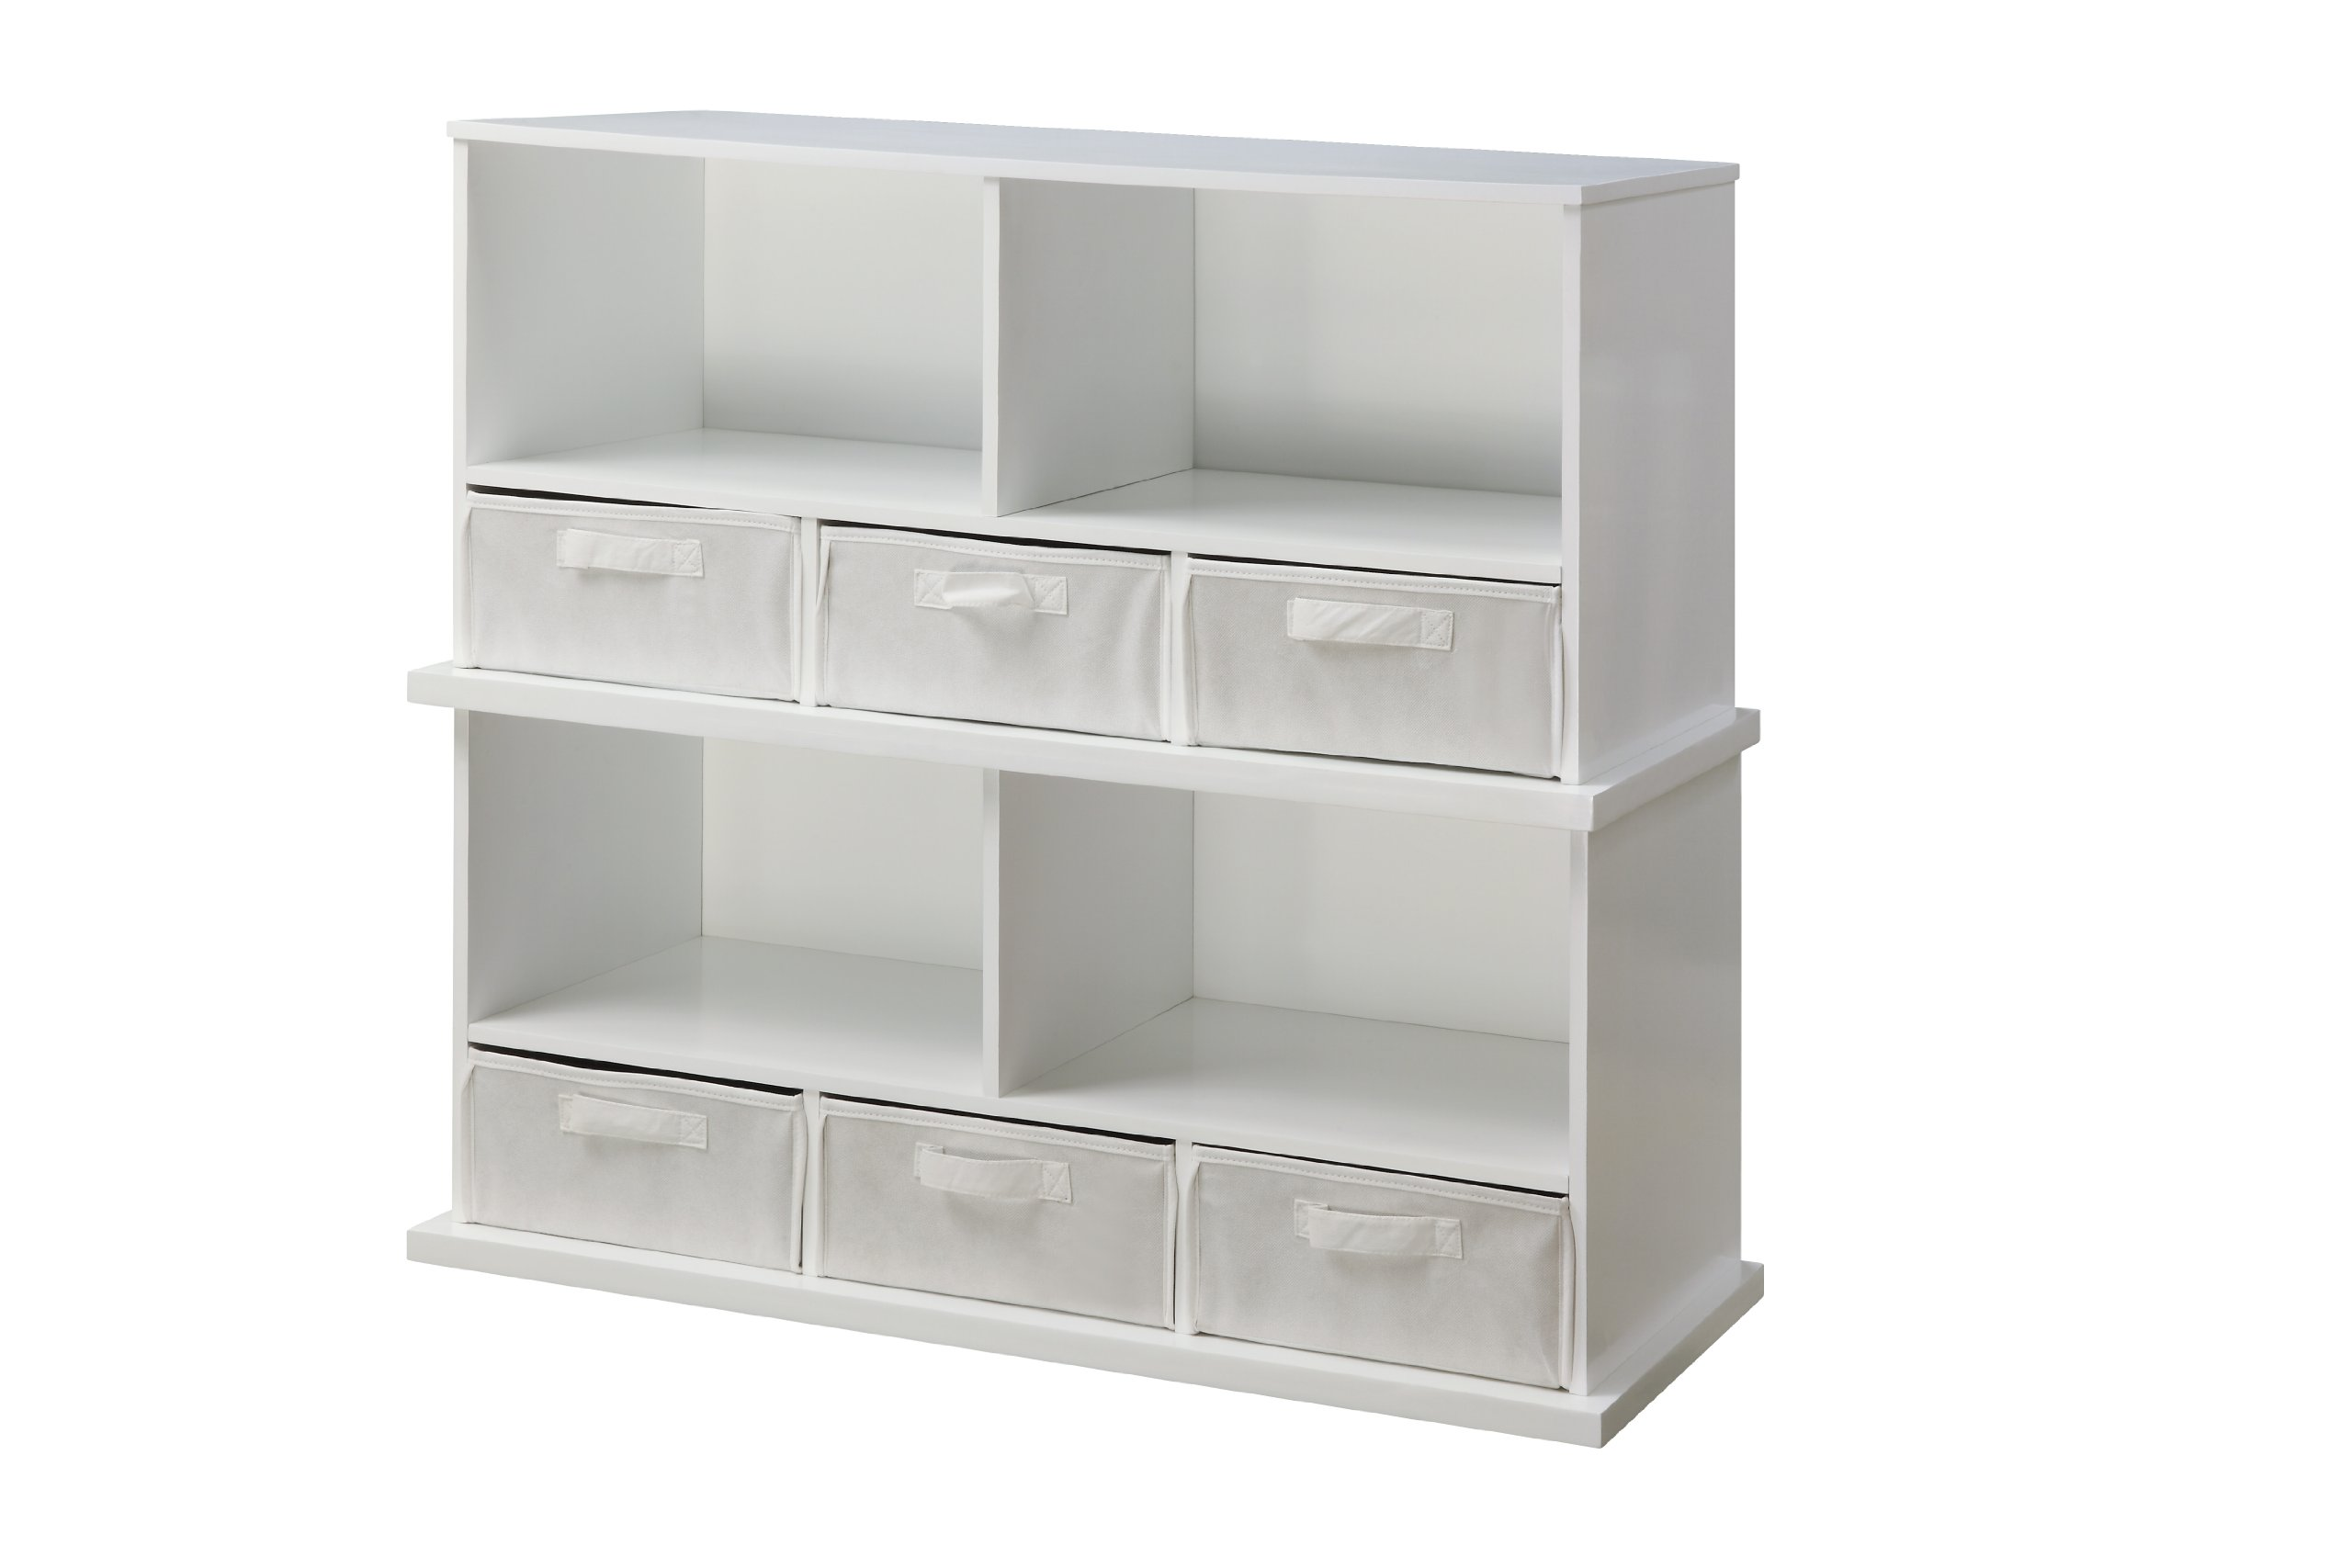 Badger Basket Shelf Storage Cubby with Three Baskets, White by Badger Basket (Image #4)